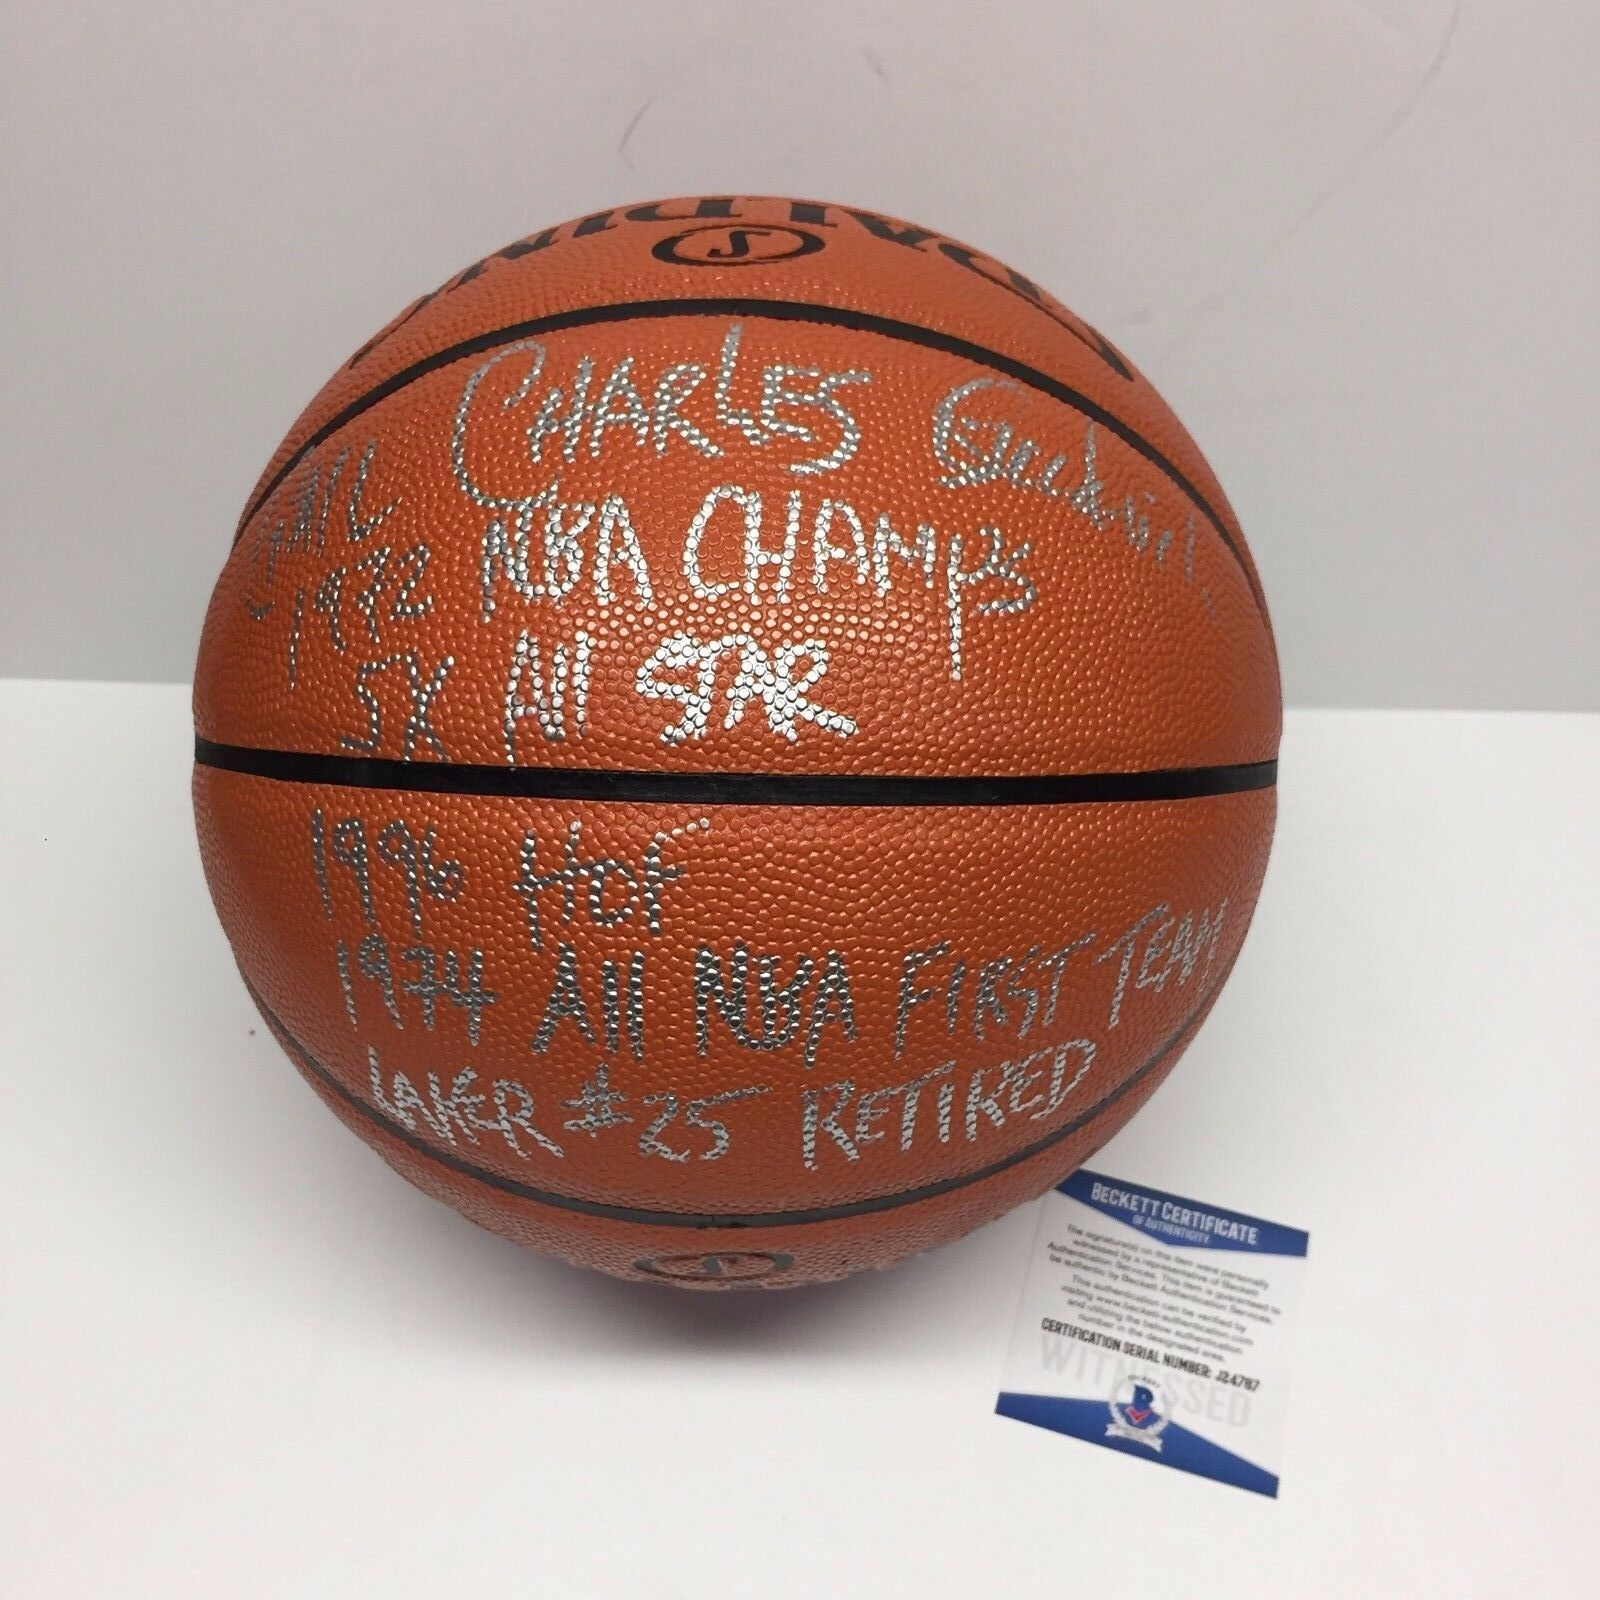 Gail 'Charles' Goodrich Signed Spalding NBA Basketball